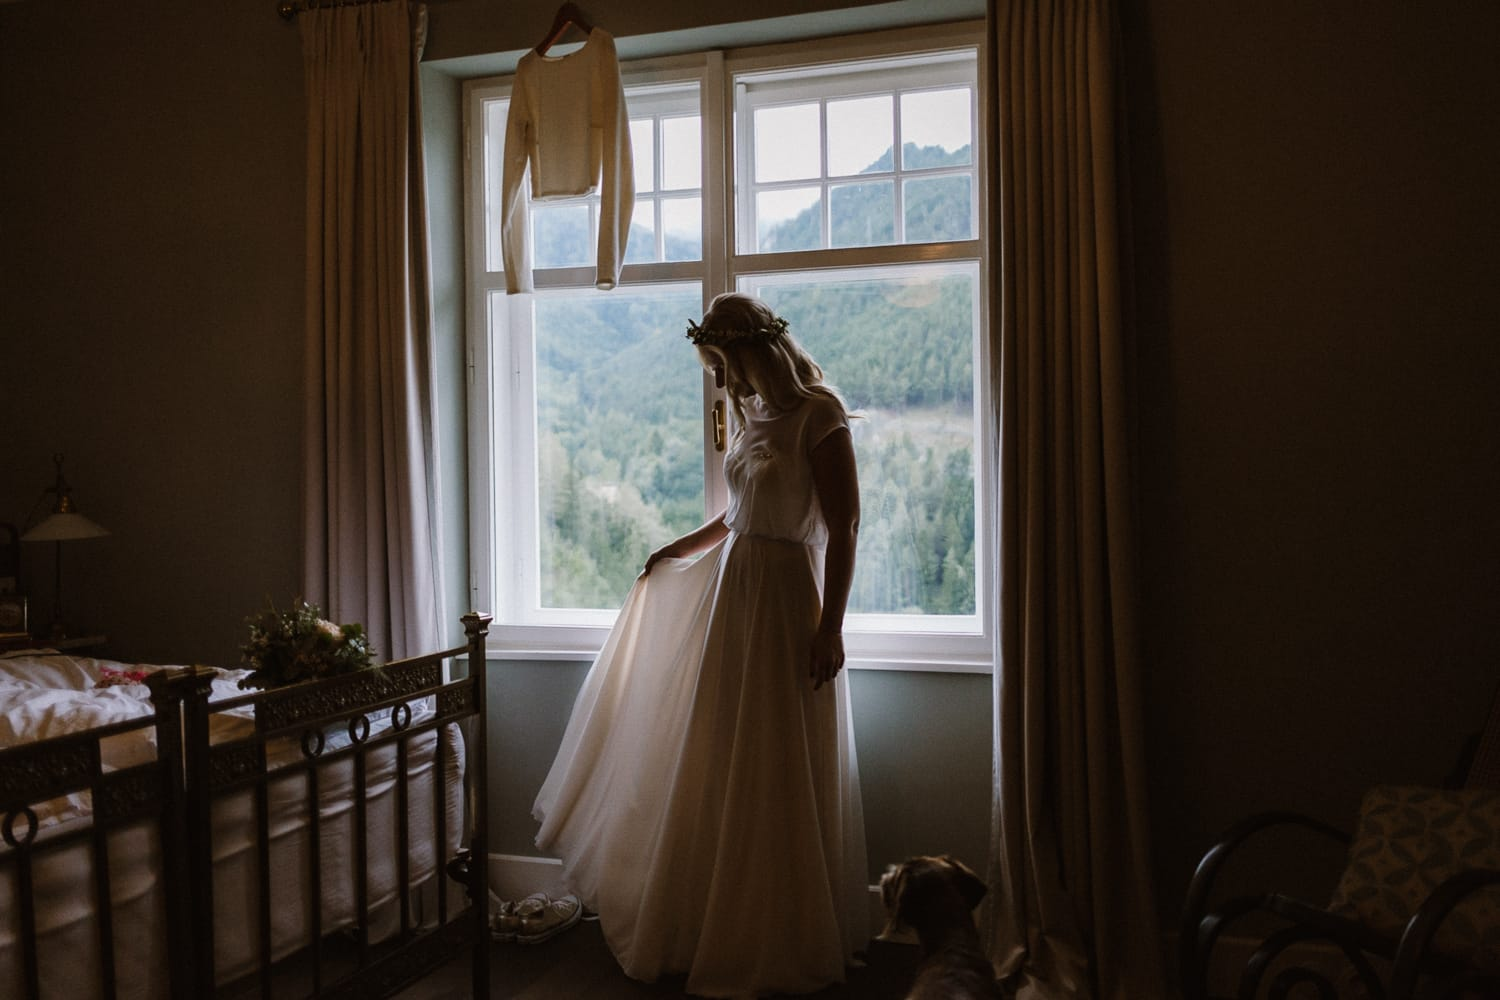 wedding-photographer-austria-mountain-wedding-alps_25_